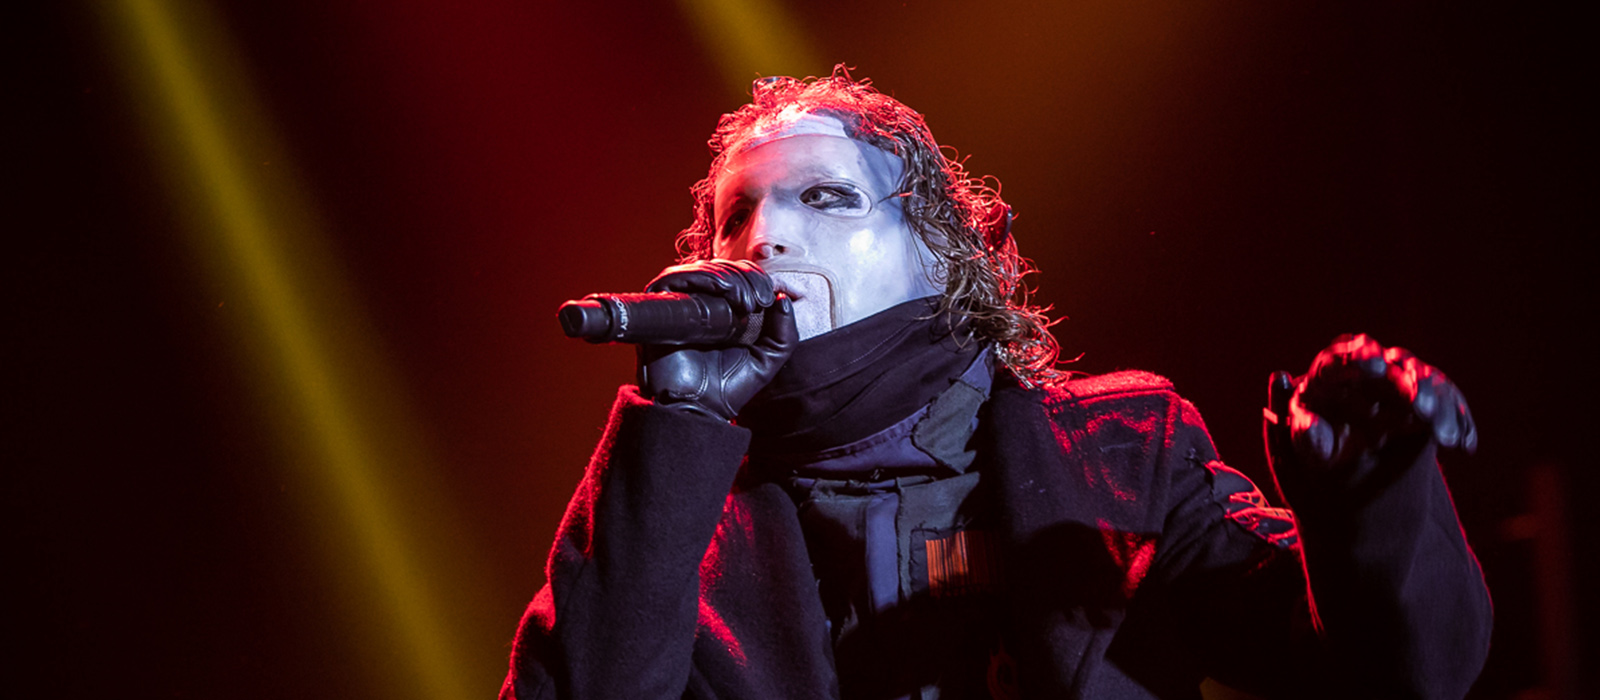 """Are You Ready"" para a estreia do vocalista dos Slipknot a solo?"